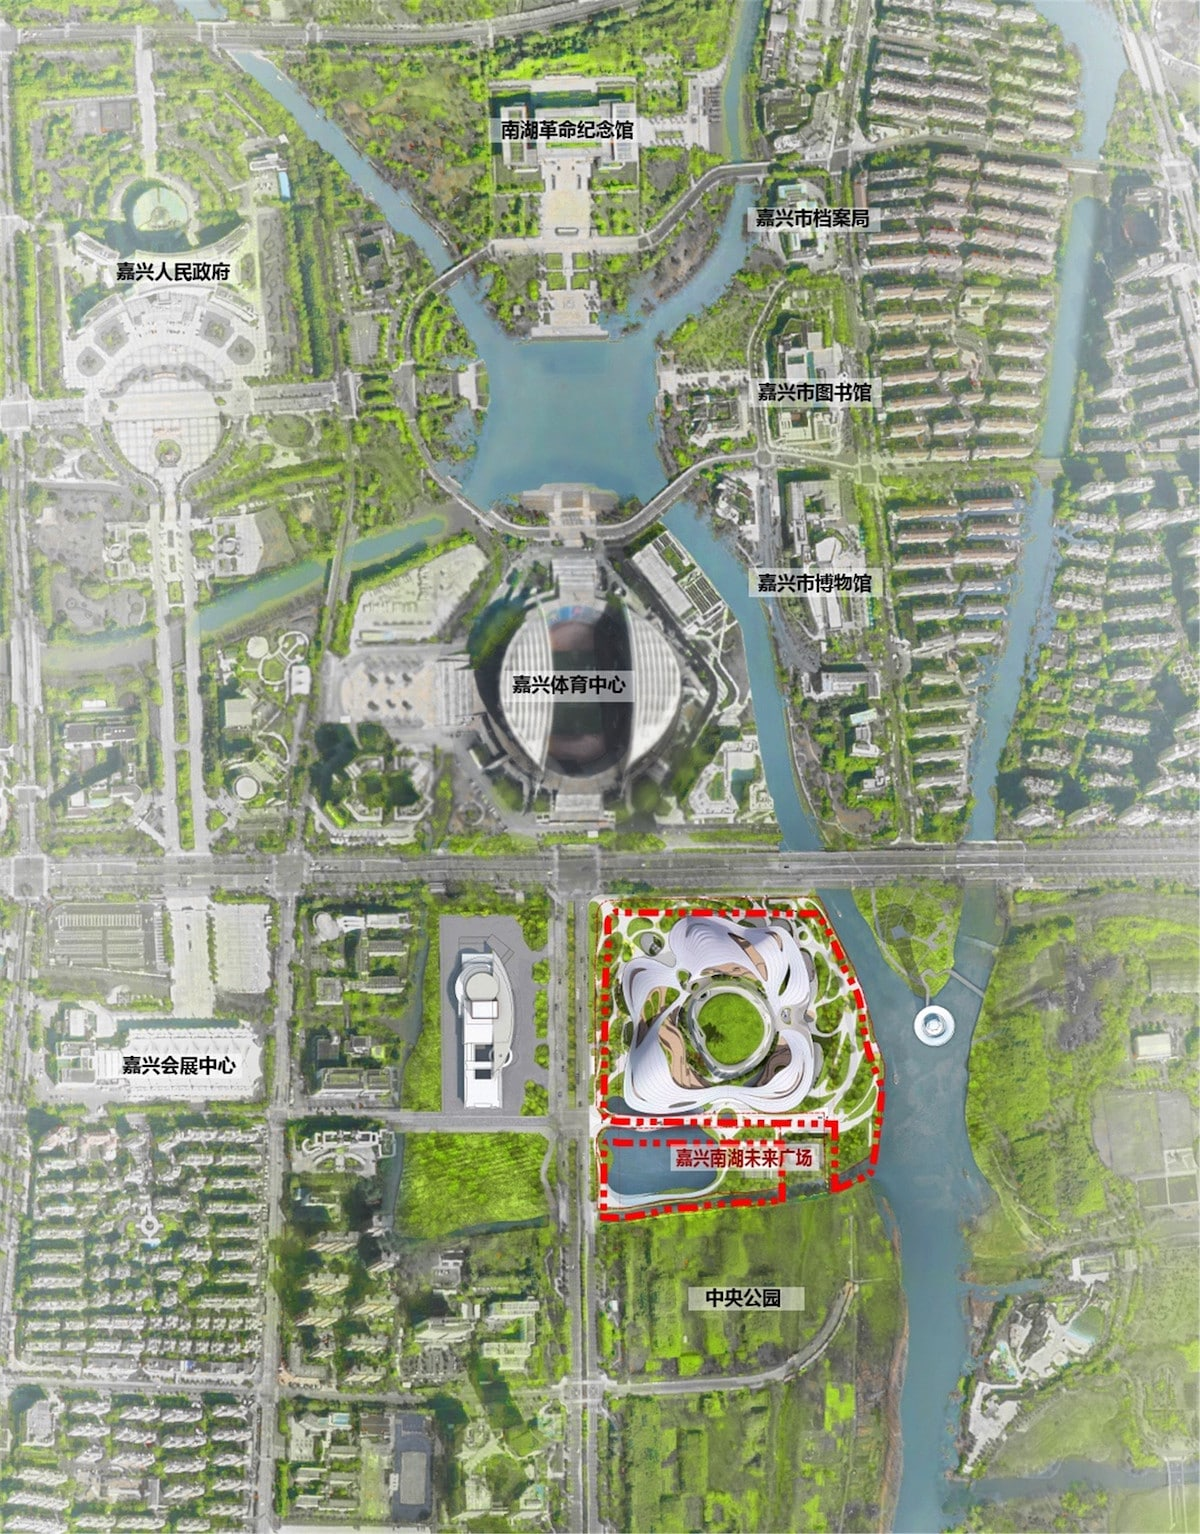 Plan View of MAD Architects' Jiaxing Civic Center